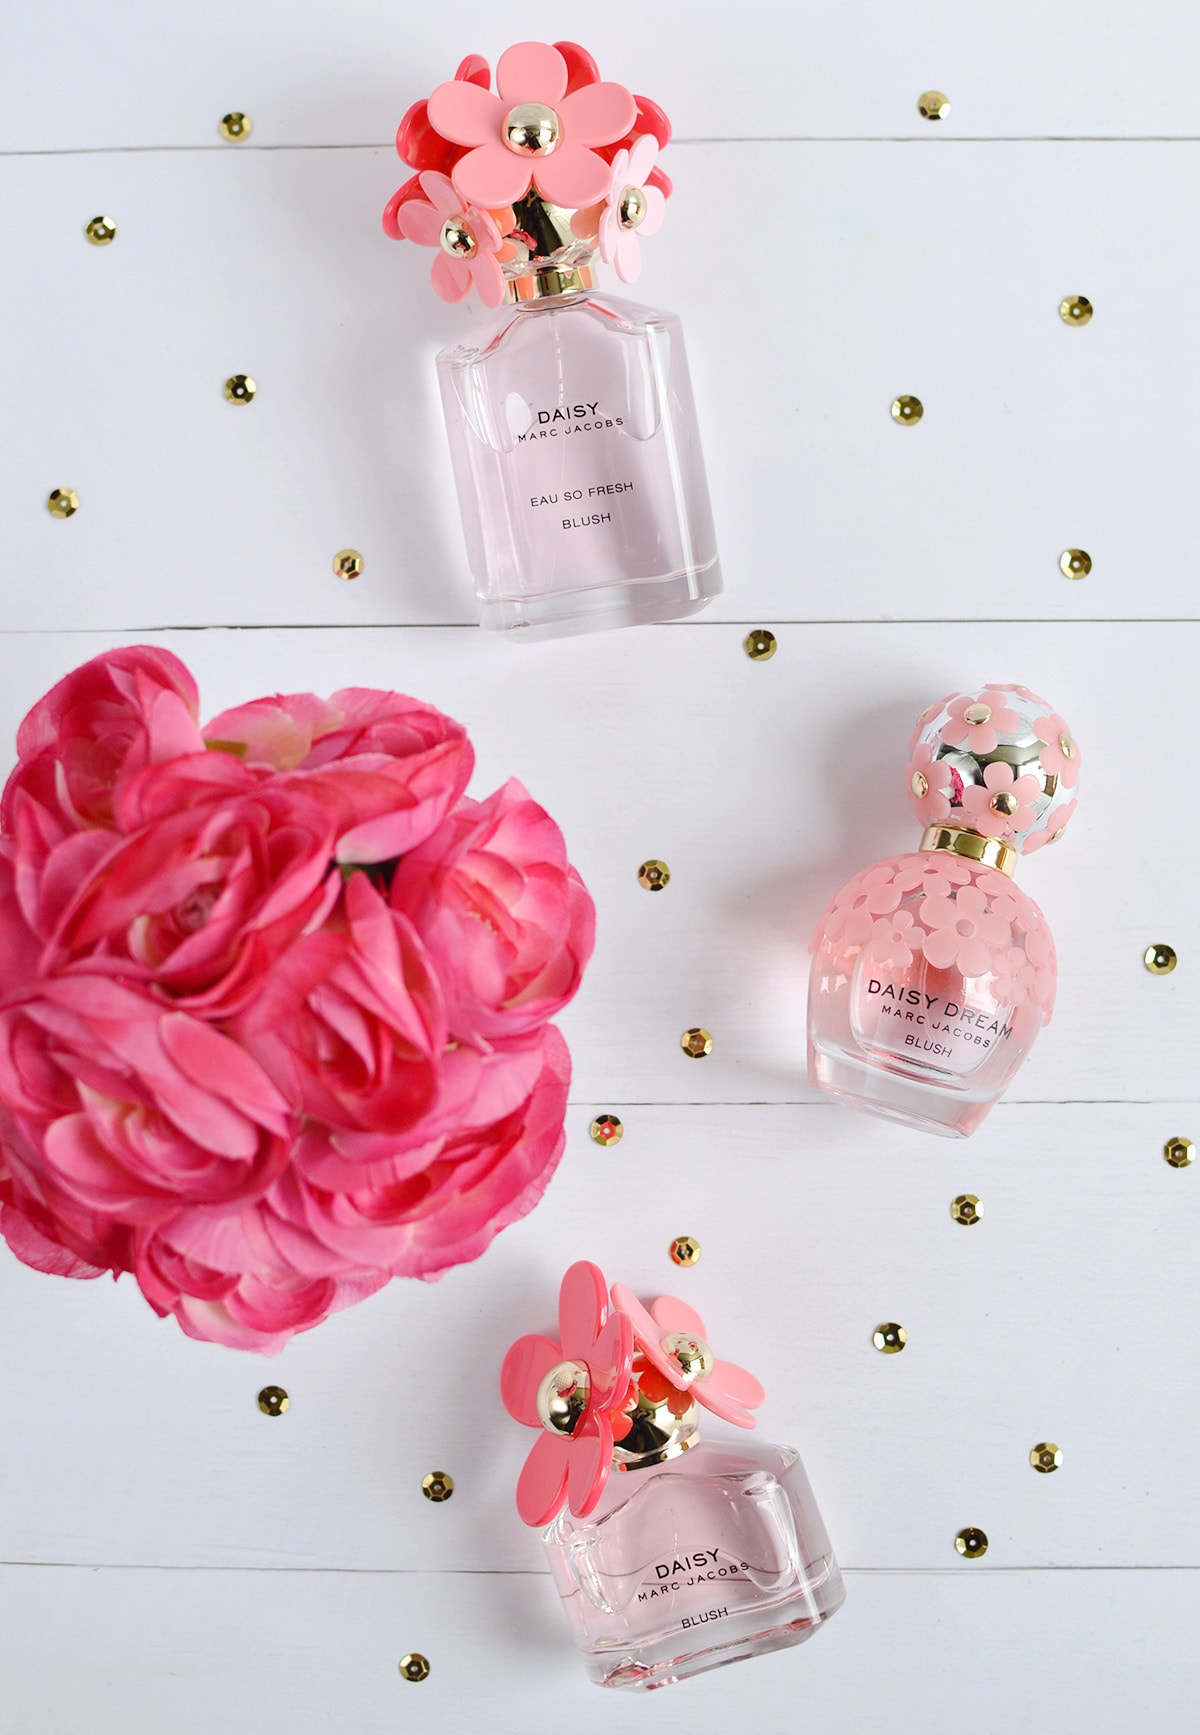 Marc jacobs daisy blush collection olive ivy marc jacobs daisy blush perfumes oliveandivyblog izmirmasajfo